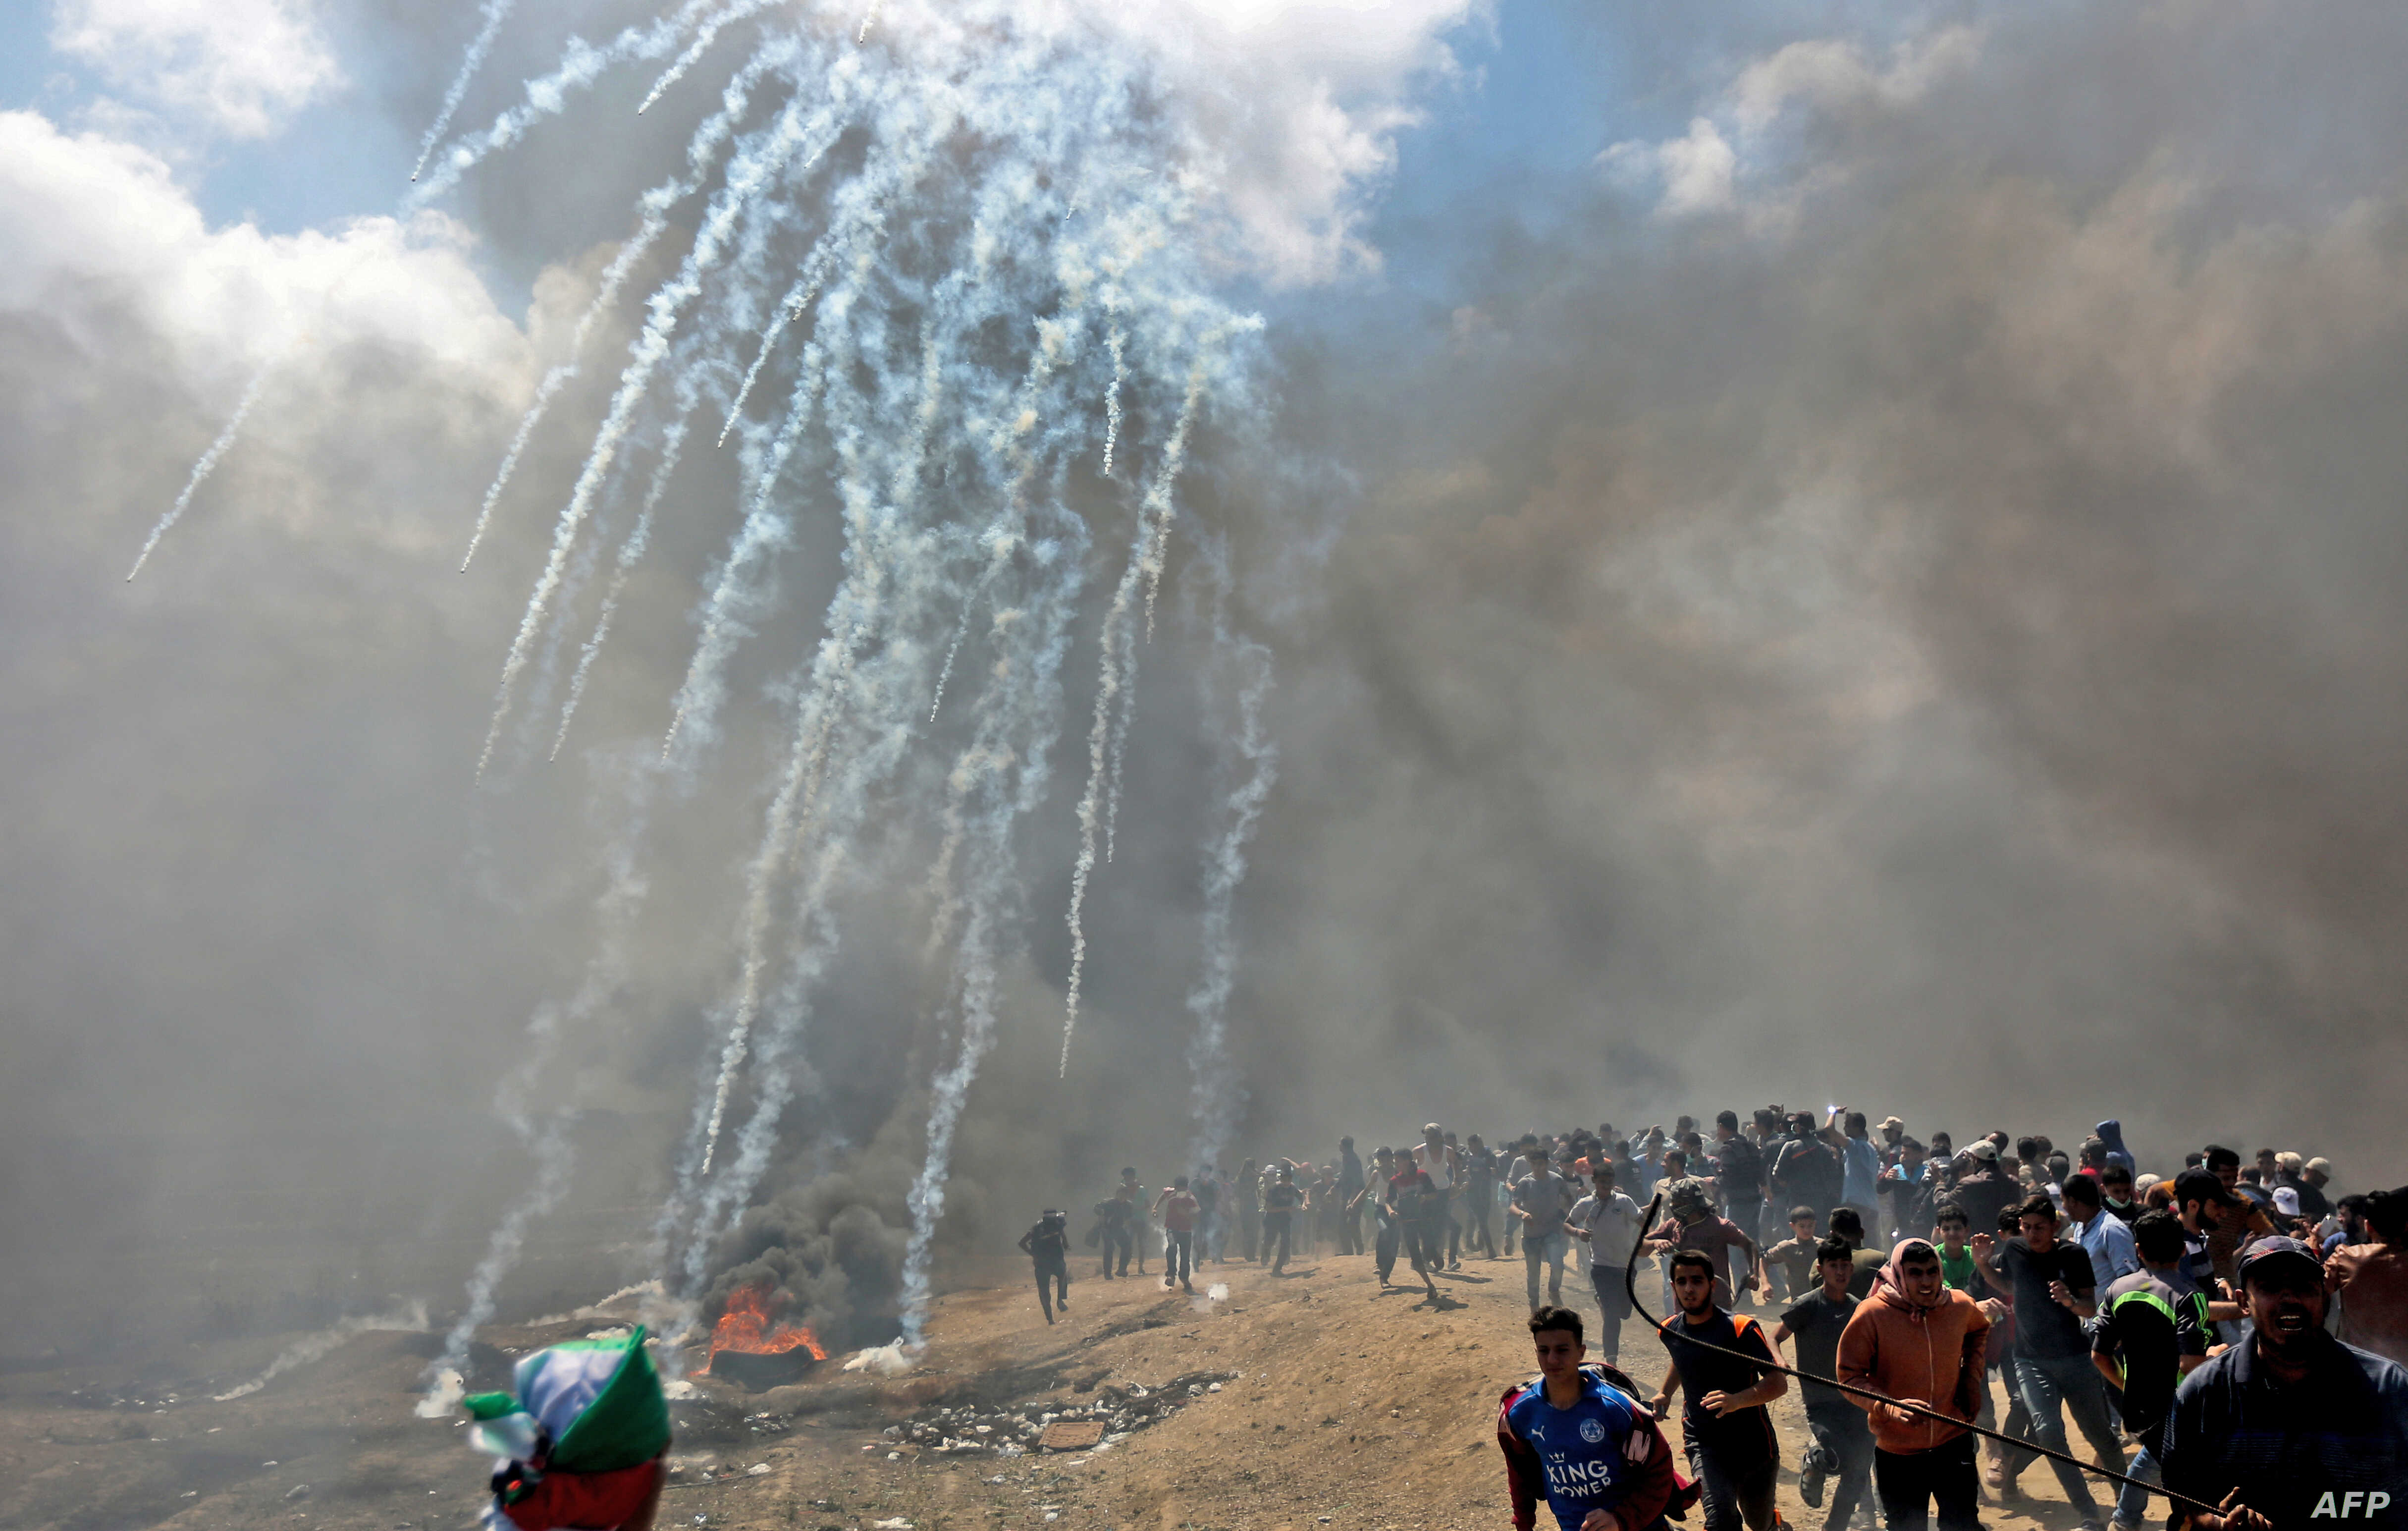 Palestinians run for cover from tear gas fired by Israeli forces near the border between the Gaza strip and Israel east of Gaza City, May 14, 2018, as Palestinians protest over the inauguration of the US embassy following its controversial move to Je...